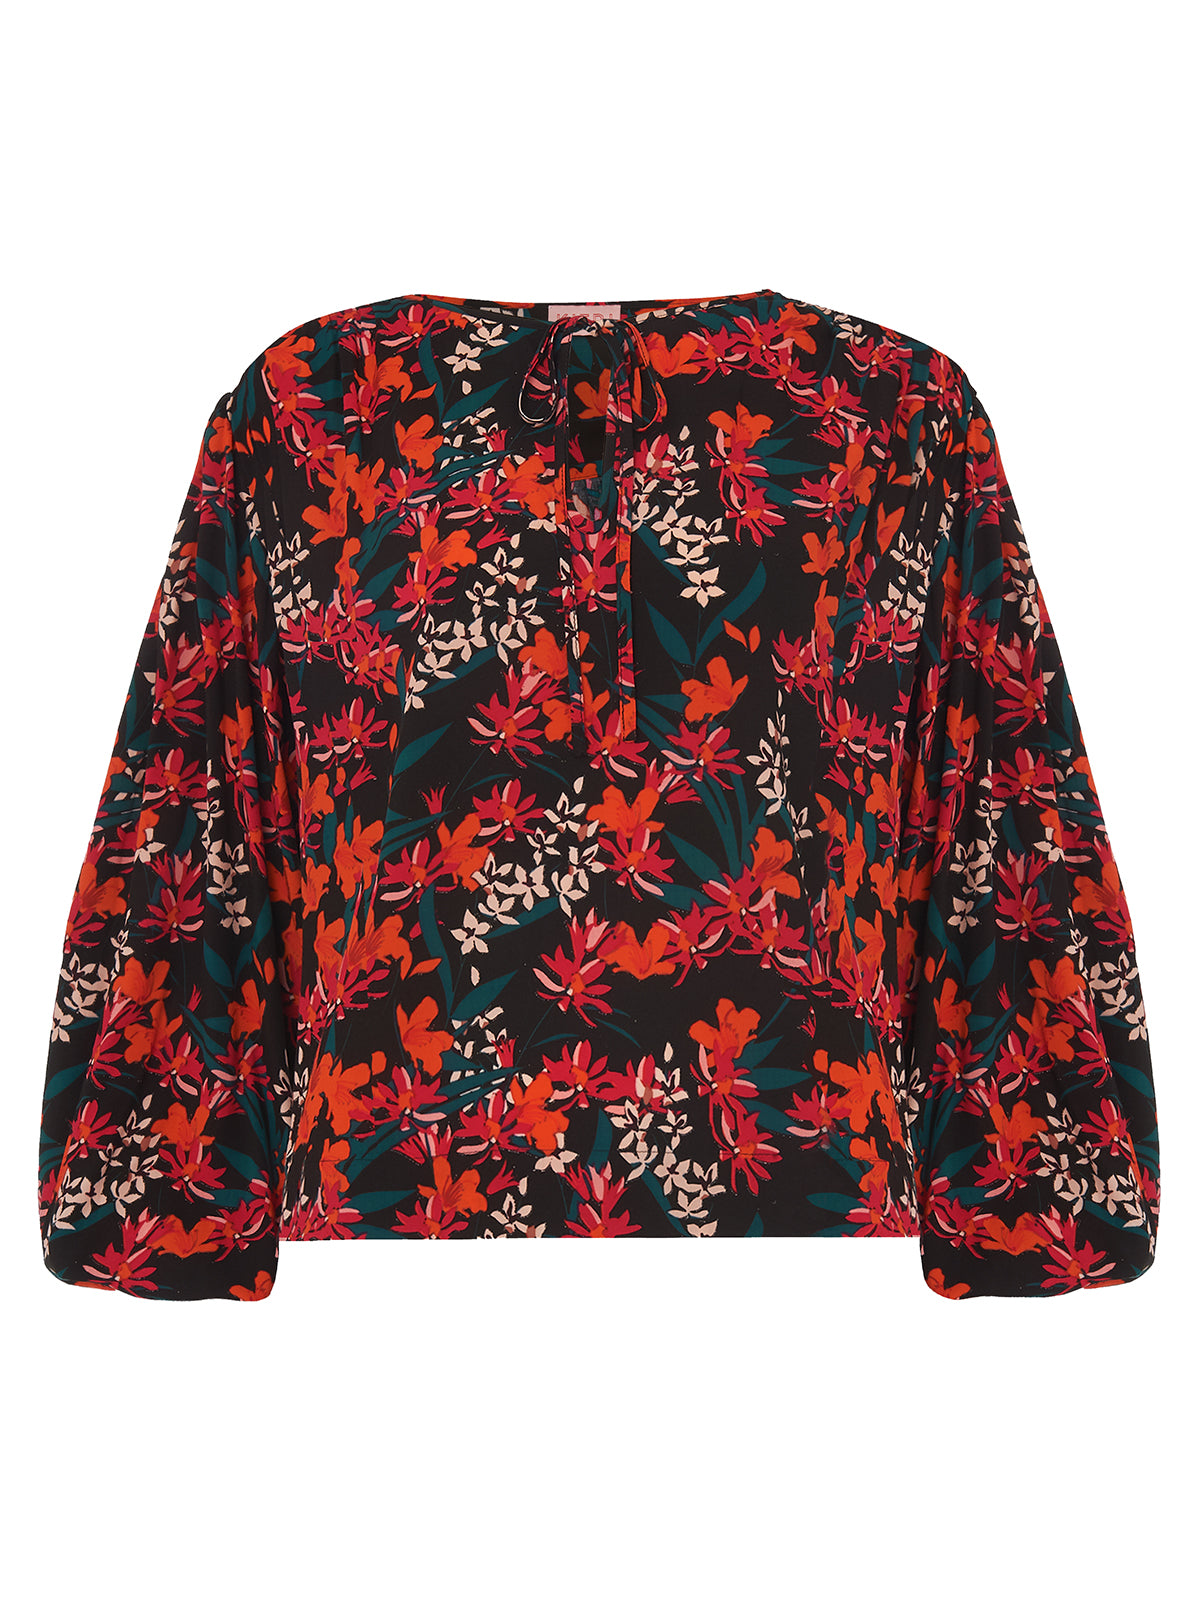 NNoa Printed Oversized Statement Sleeve Blouse by KITRI Studio